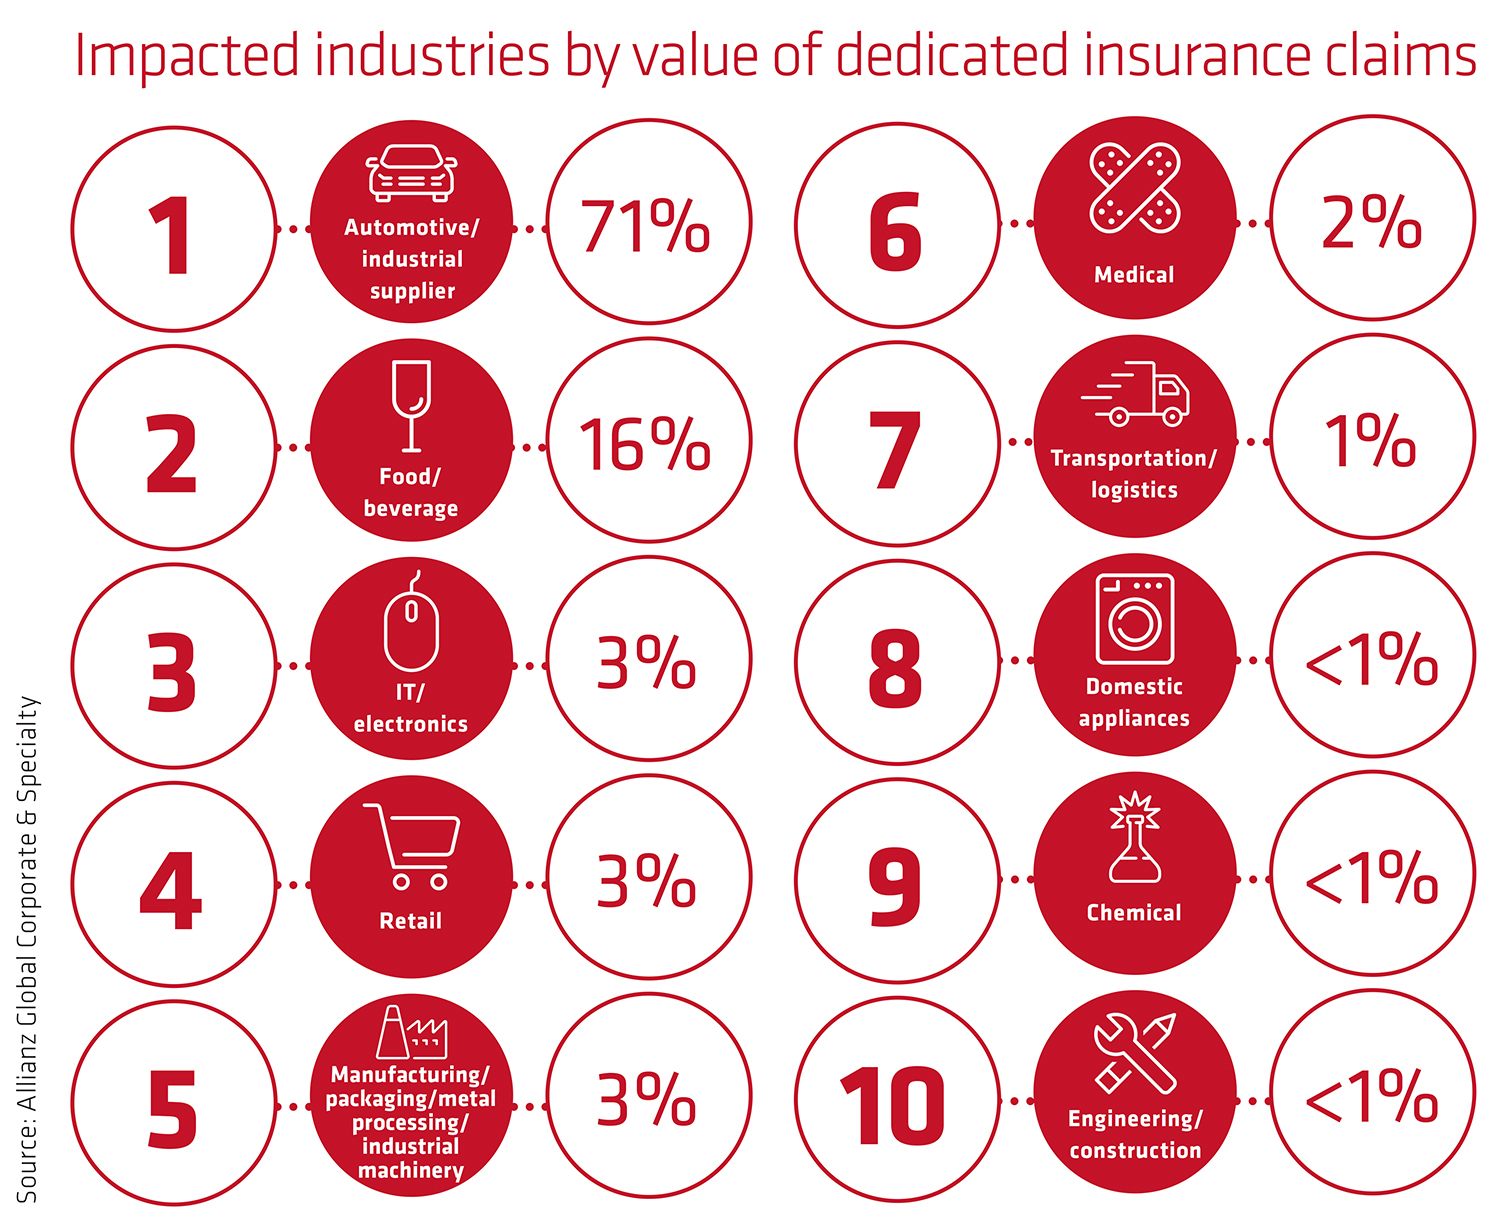 Impacted industries by value of dedicated insurance claims